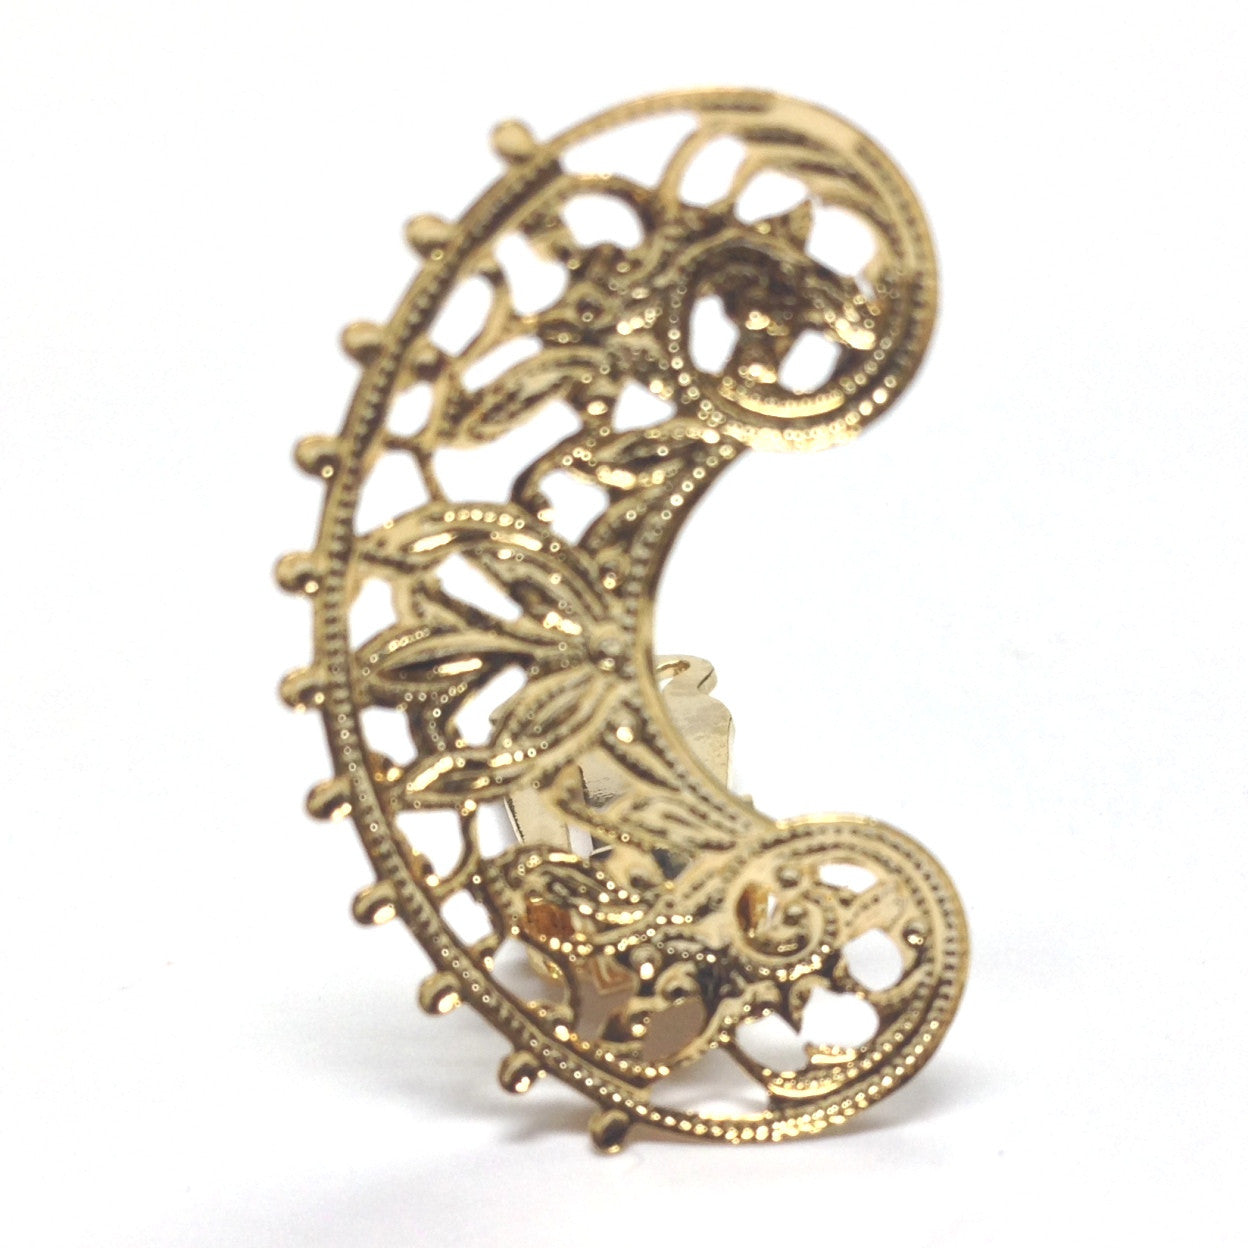 30MM Gold Brass Filigree C Earclip (4 pieces)